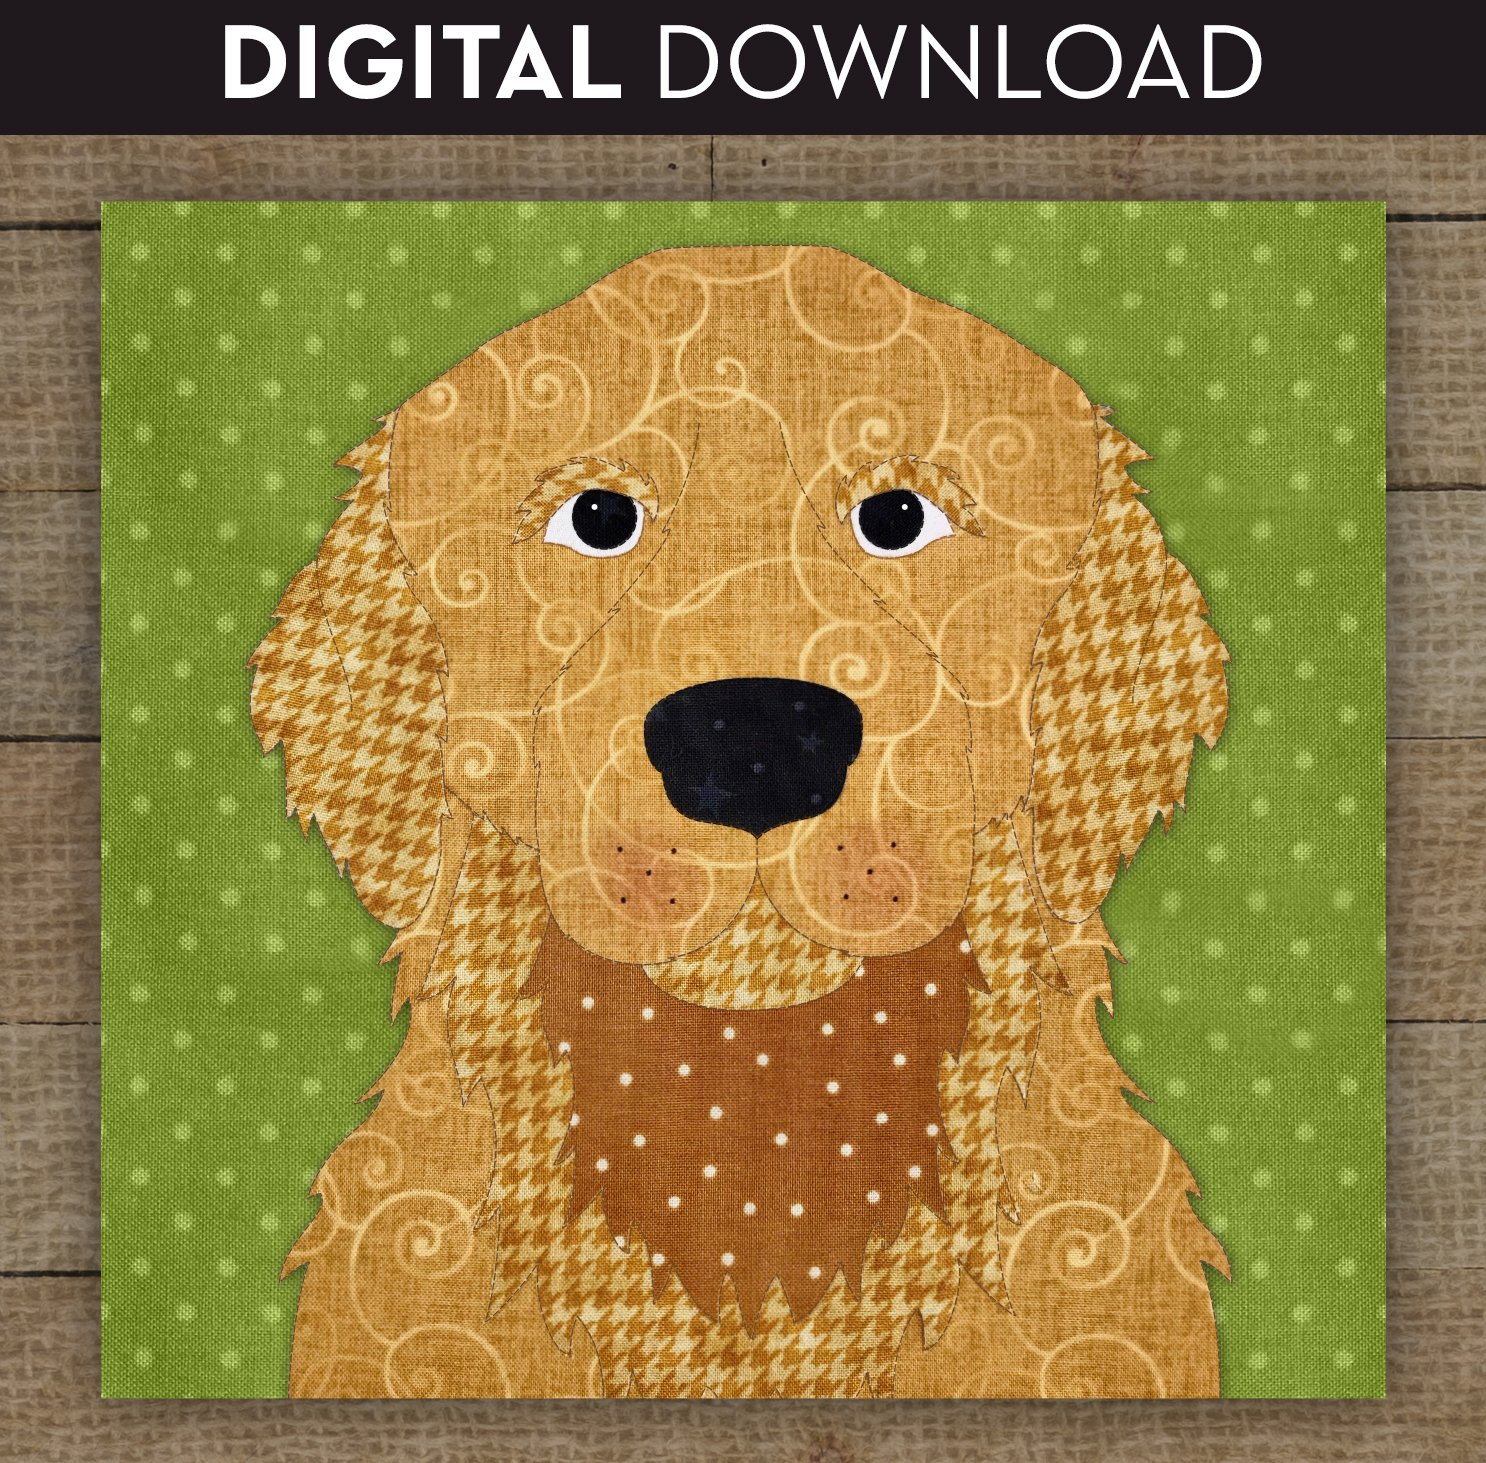 Golden Retriever Cream & Gold - Download